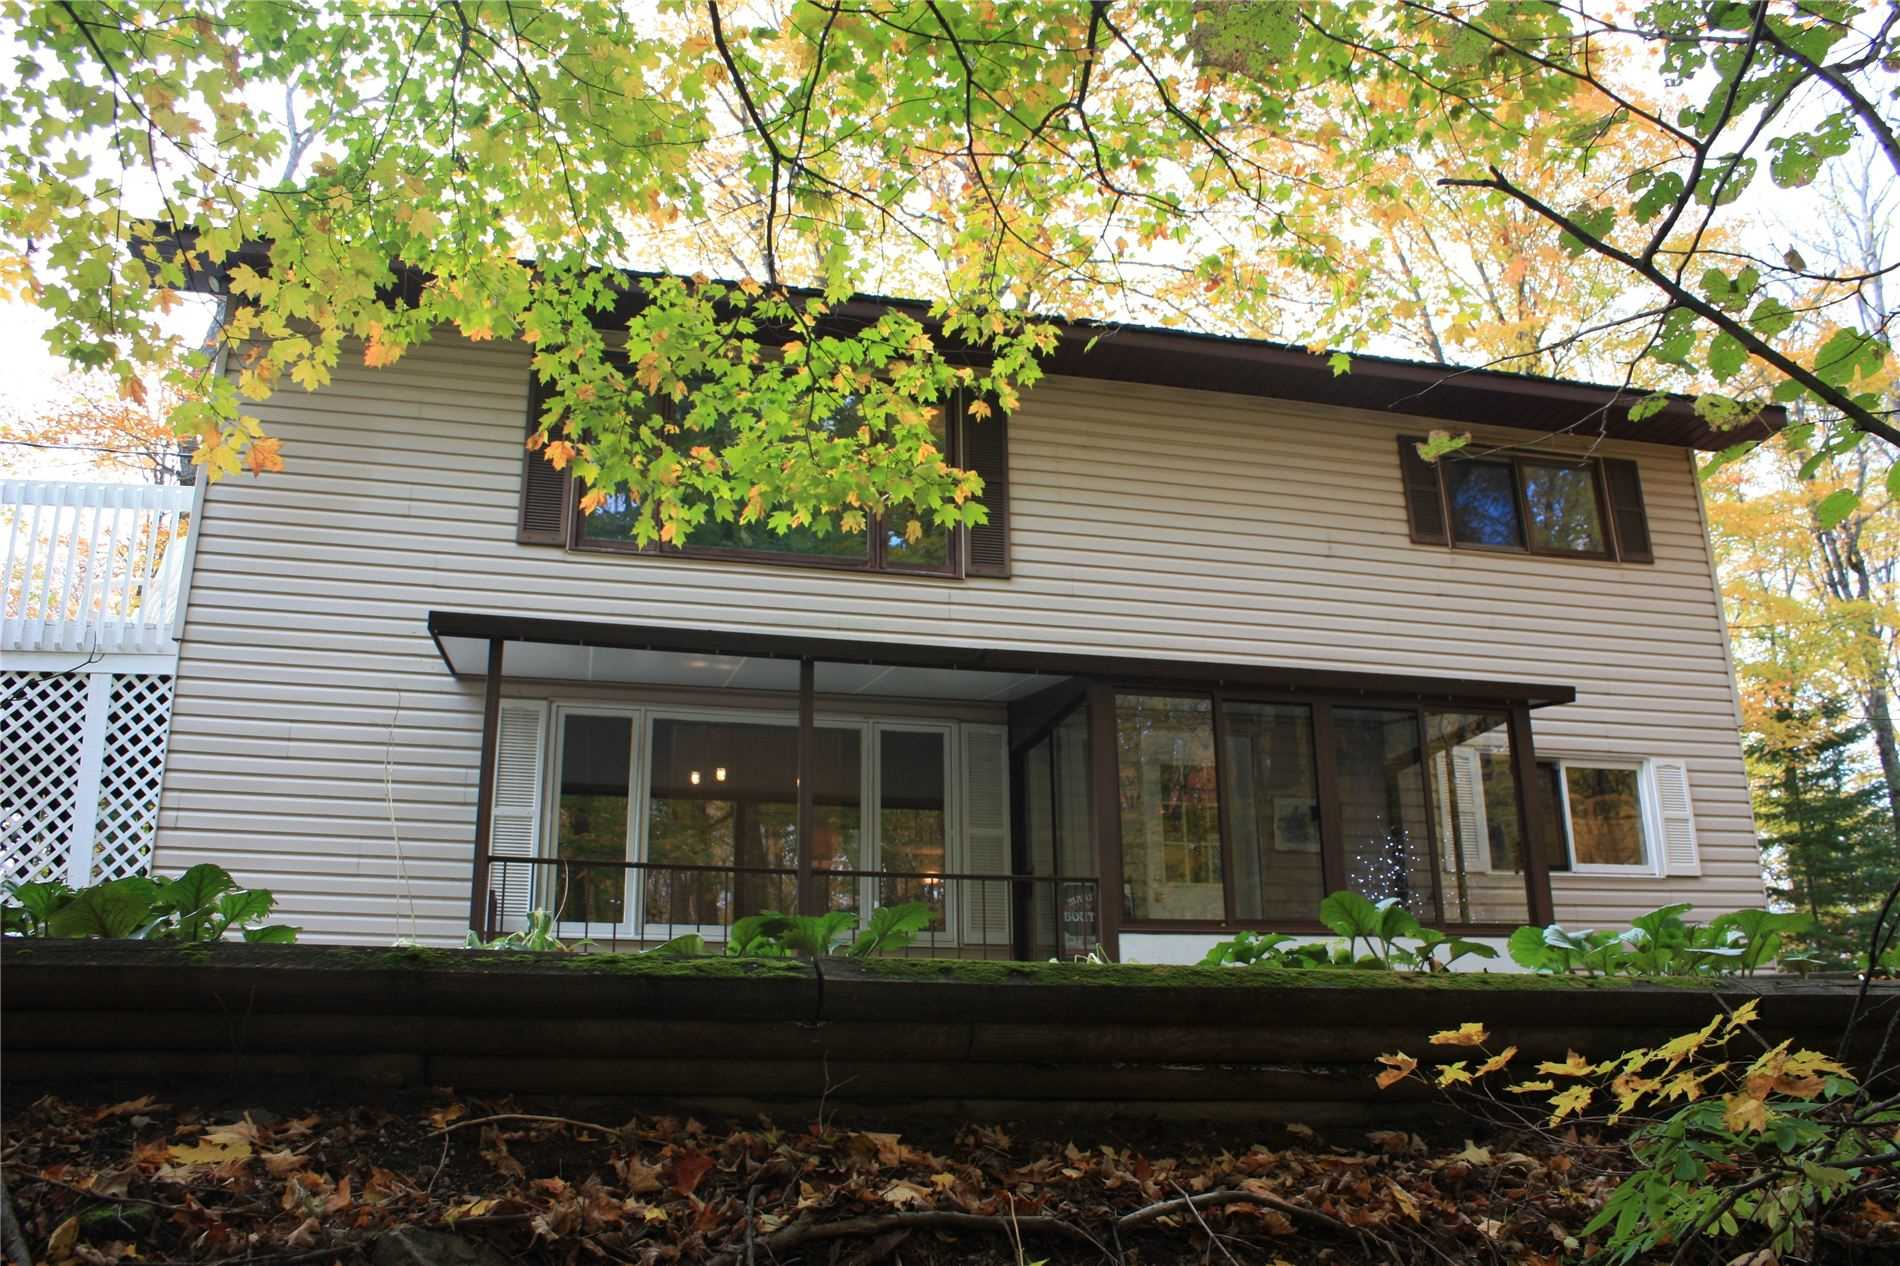 Lovely Four Season Home Within 15 Minutes Of Haliburton Village On A Year Round Road. 3 Bedroom Plus Den/Home Office. Beautifully Appointed Open Concept Kitchen Featuring Tiled Floor And Jenn Air Cooktop. Enjoy Your Morning Coffee Or Evening Cocktails On The Balcony Deck Off The Dining Room.